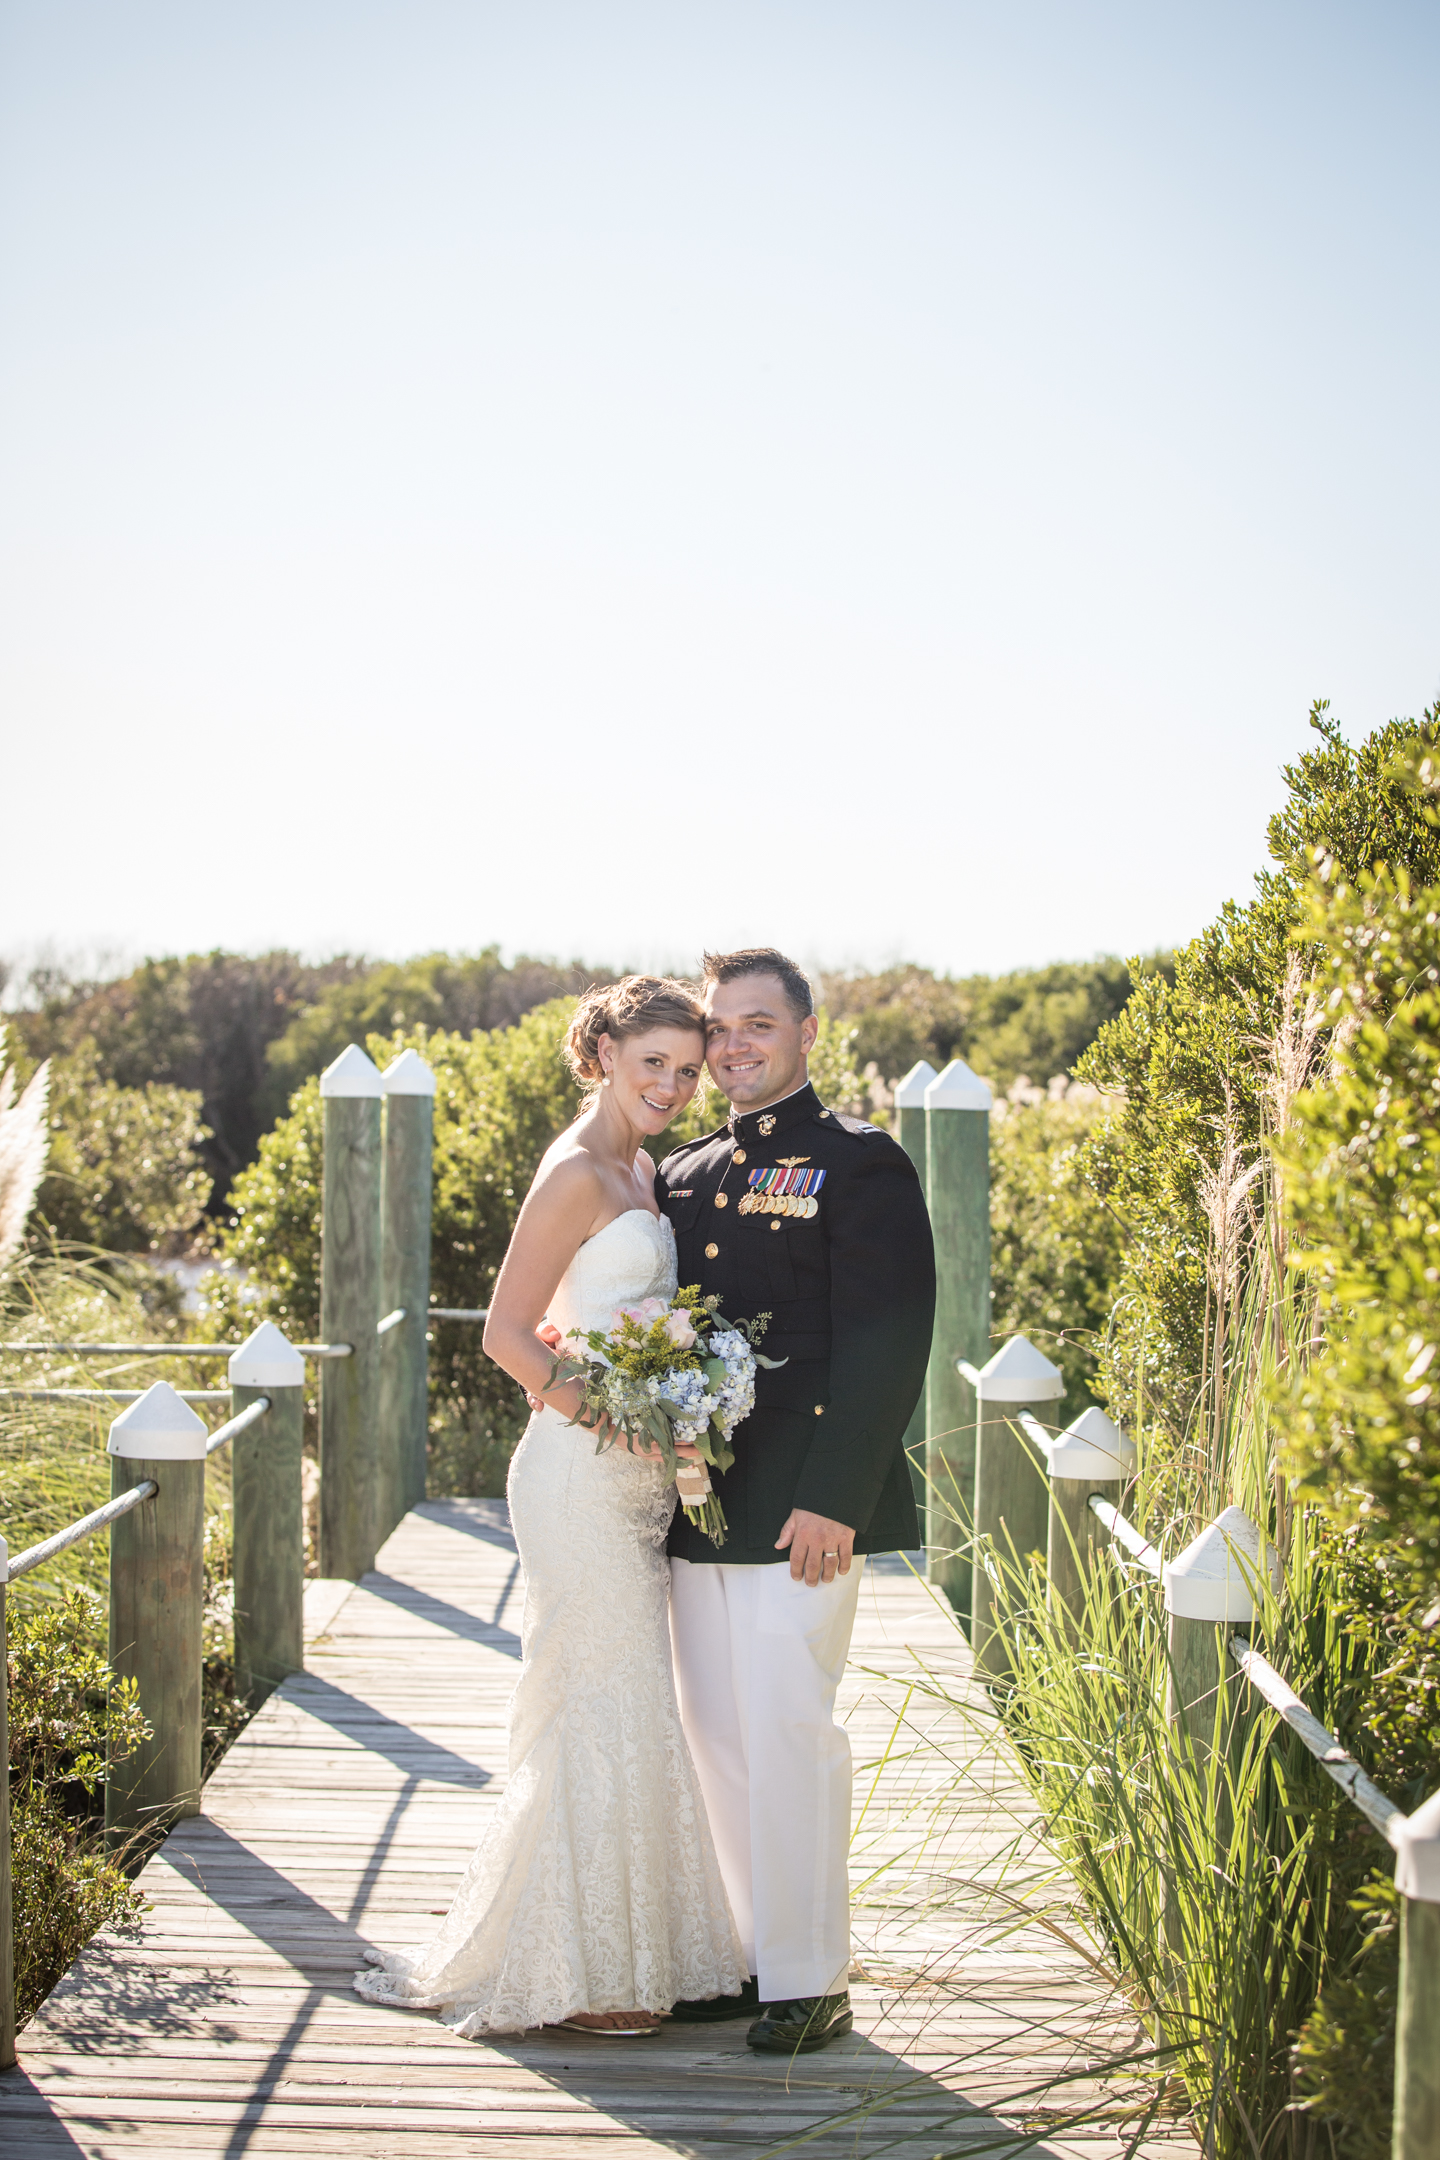 20151114_Stefanski_Wedding_MGM_0005.jpg